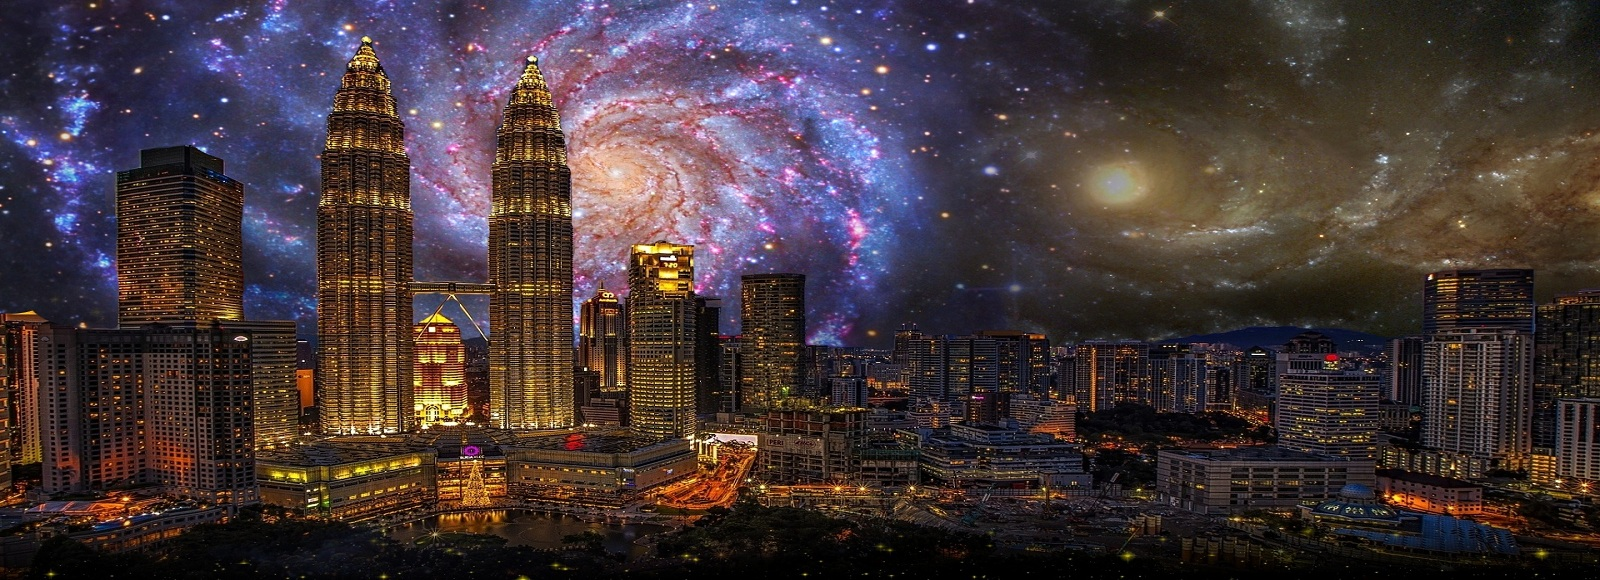 Hotel reservation in Kuala Lumpur Hotel offers in Kuala Lumpur